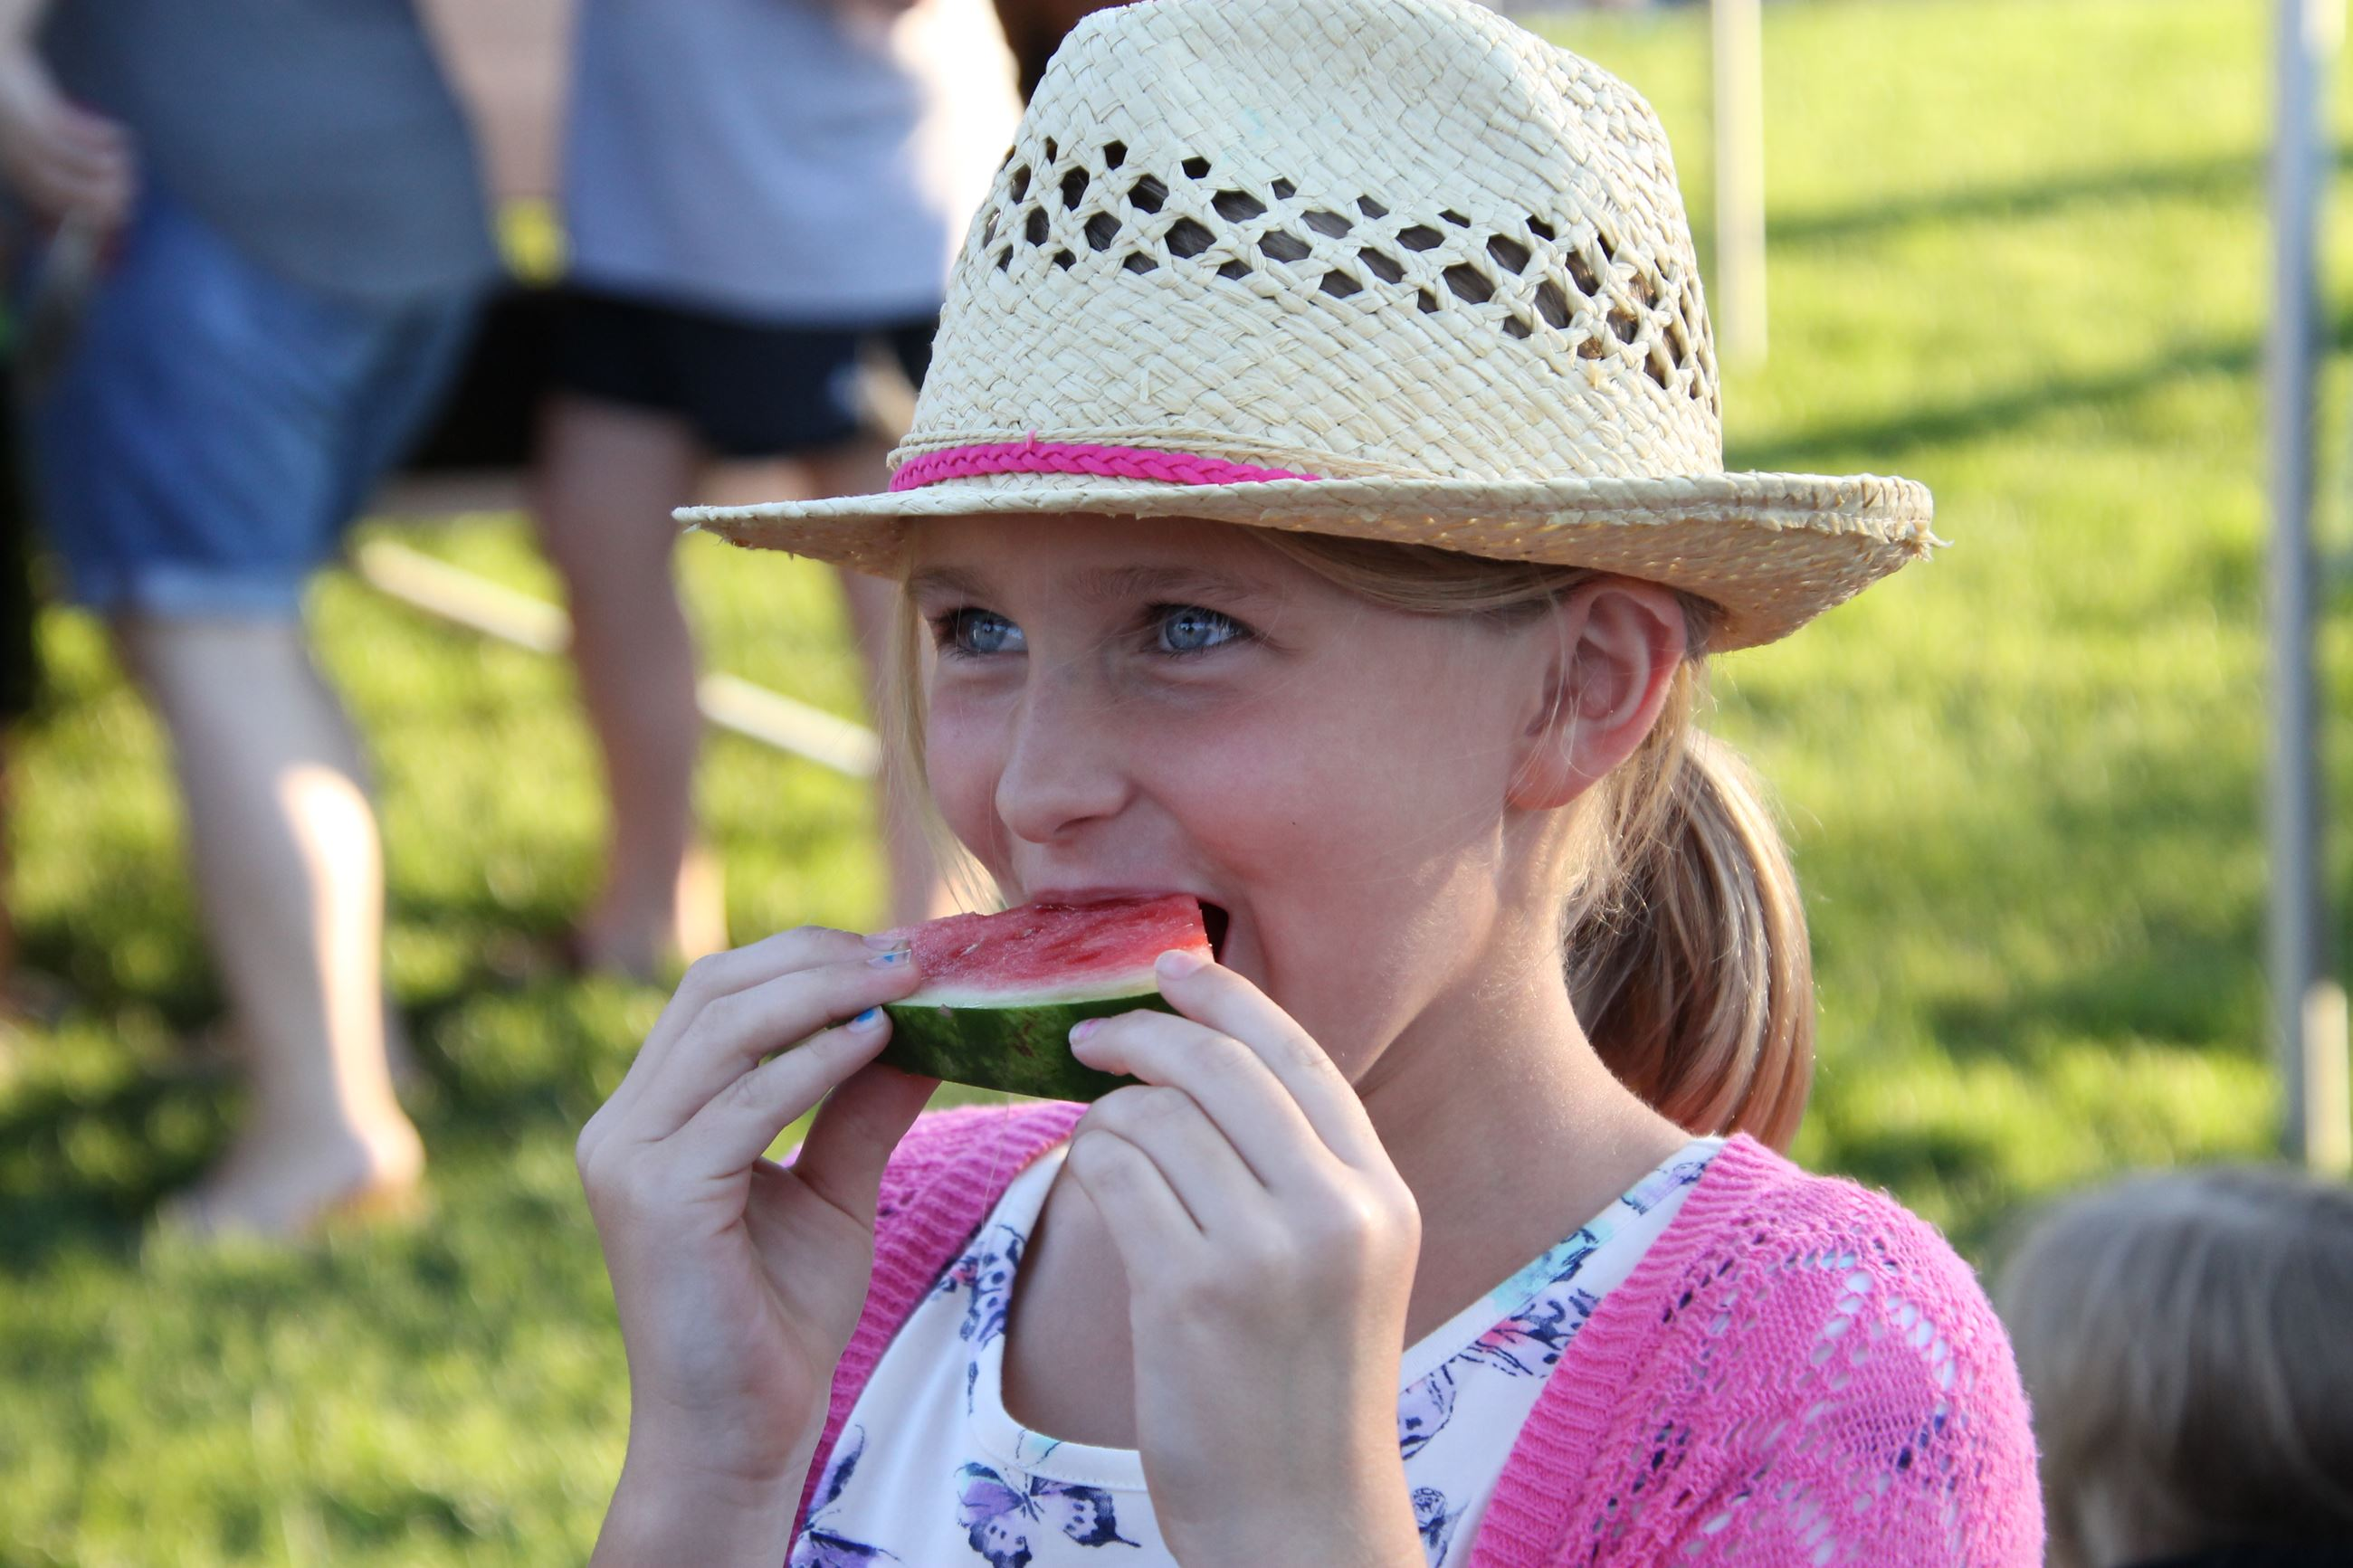 Girl eating a piece of watermelon